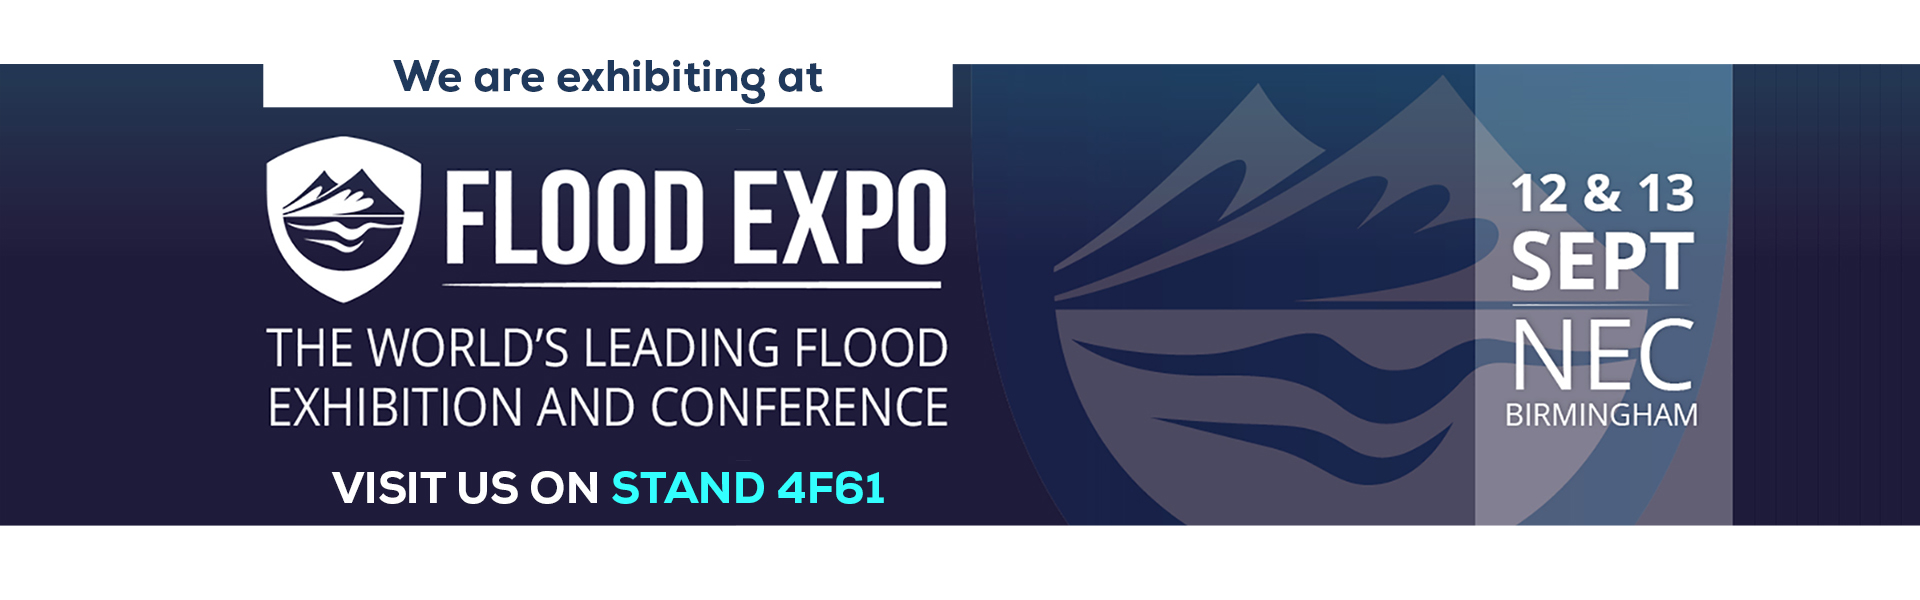 flood_expo_banner0